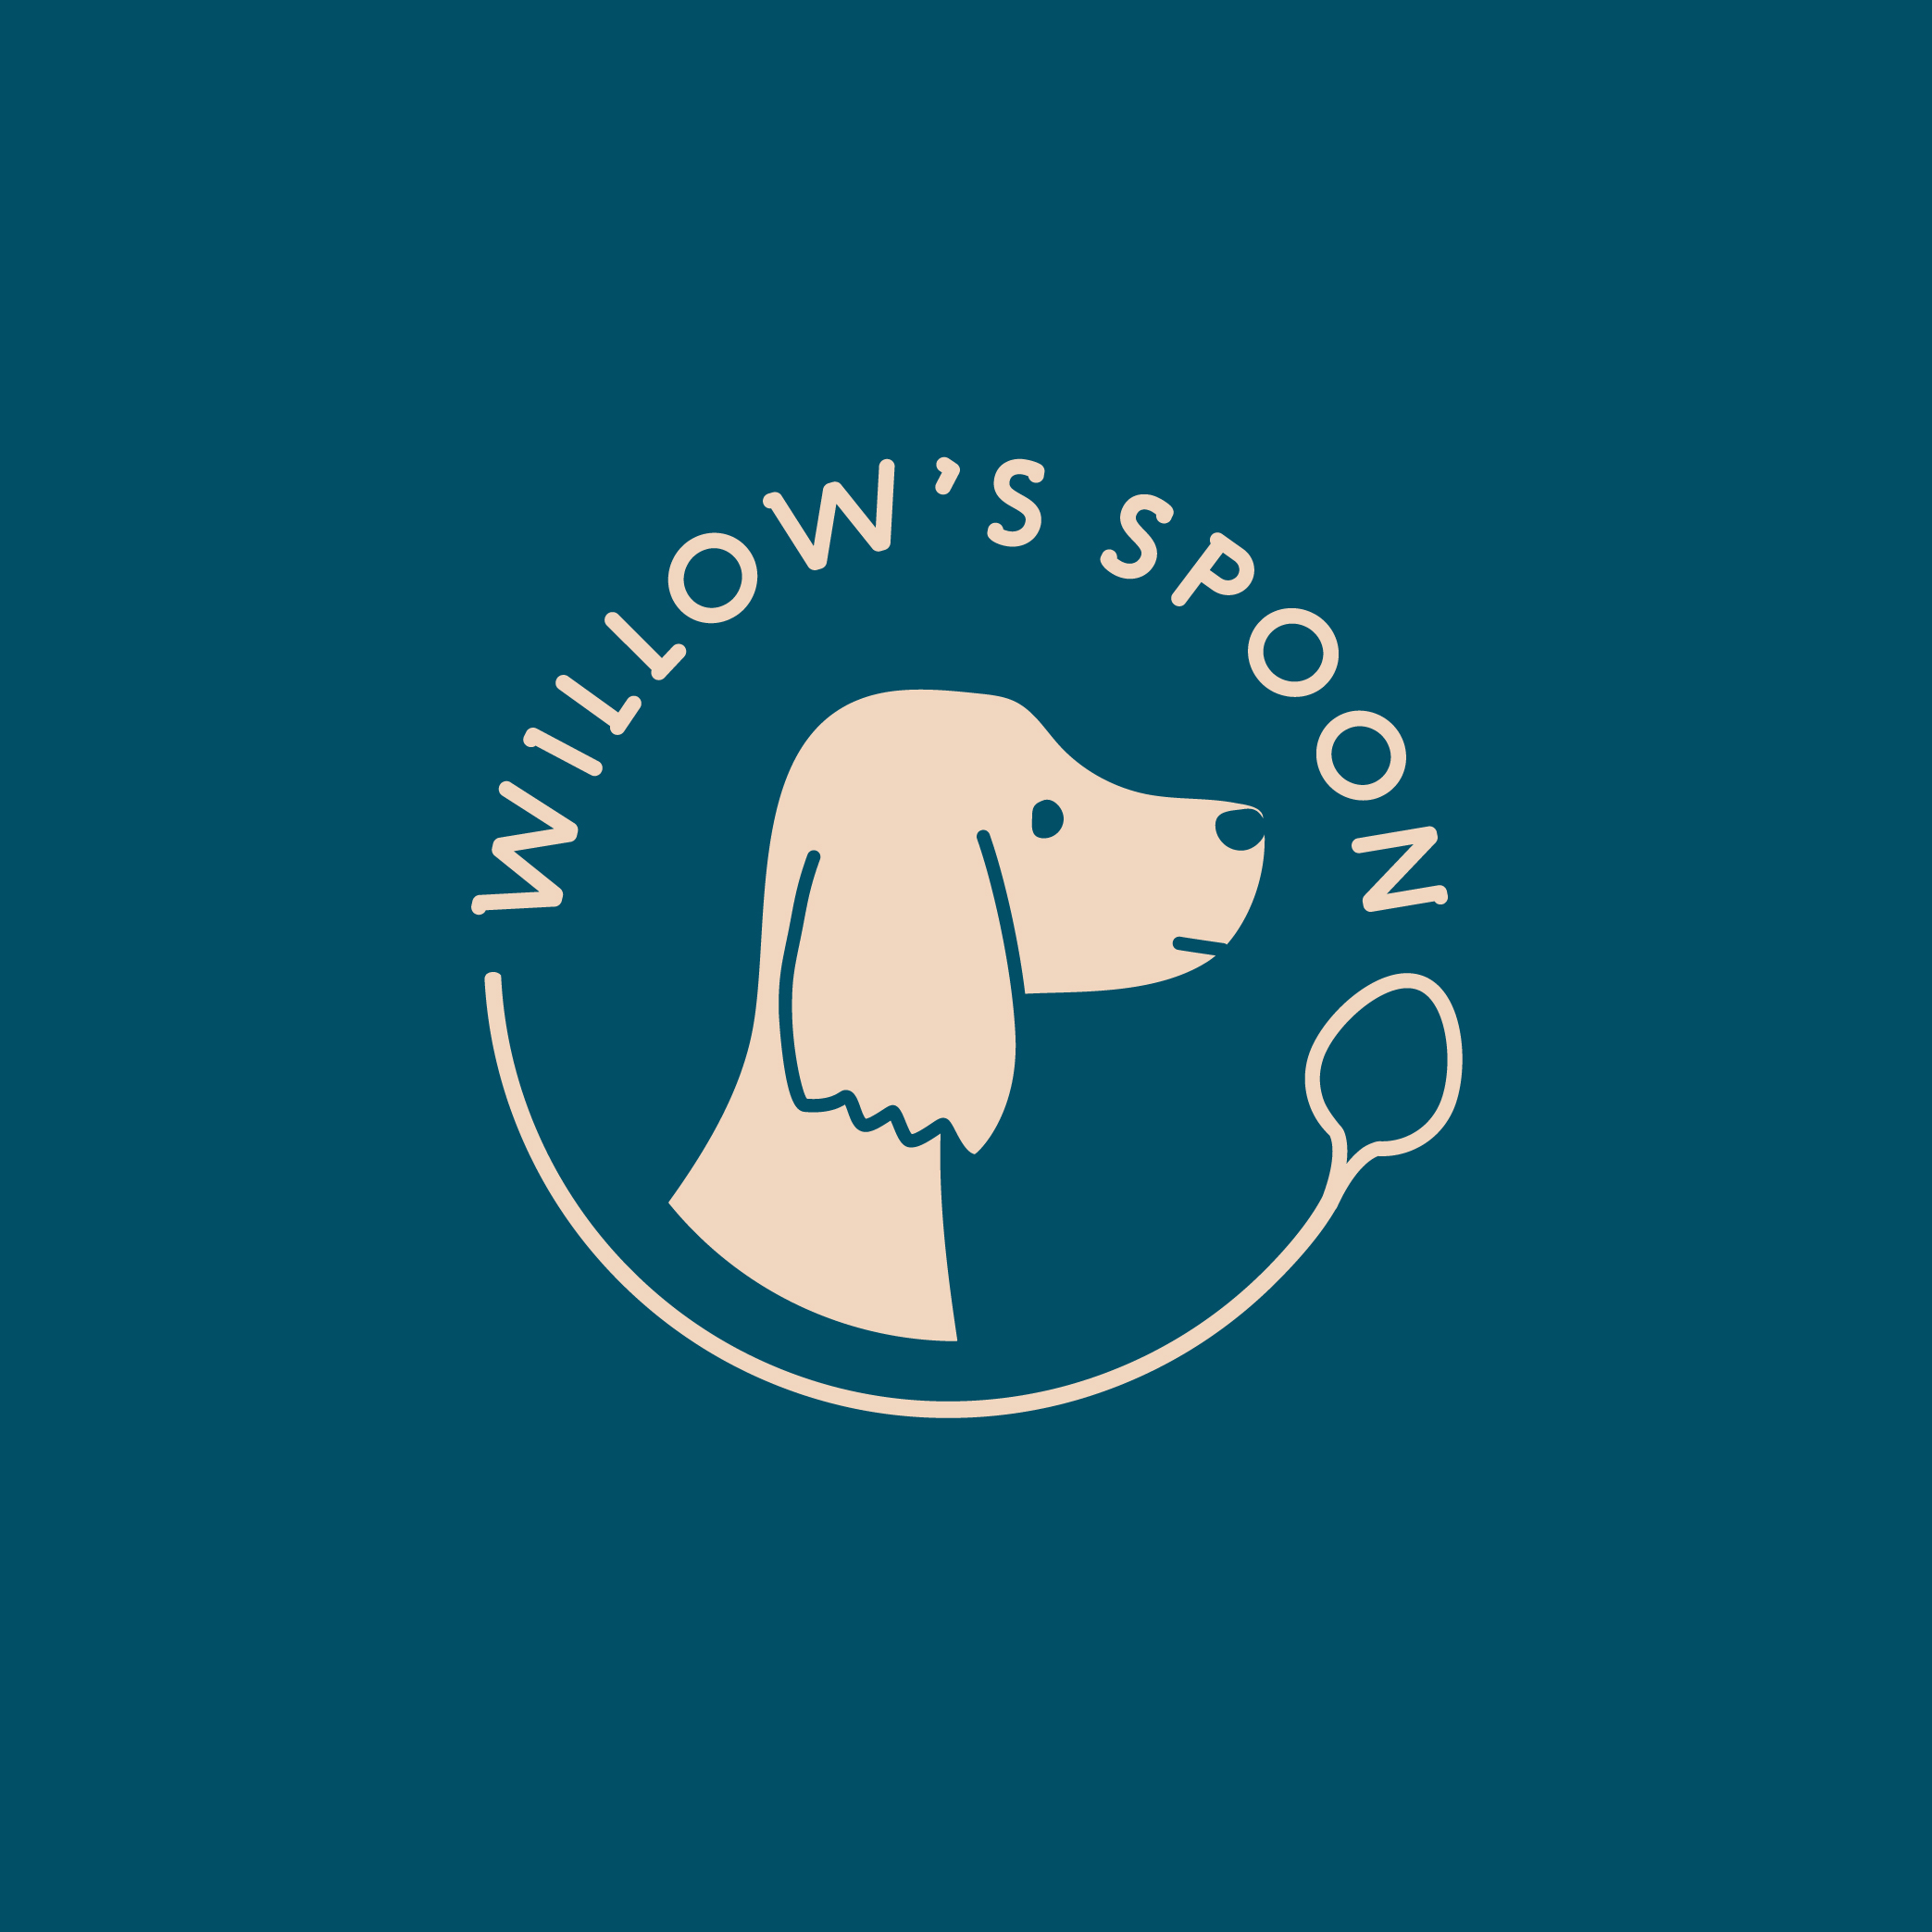 willow's spoon dog treat logo